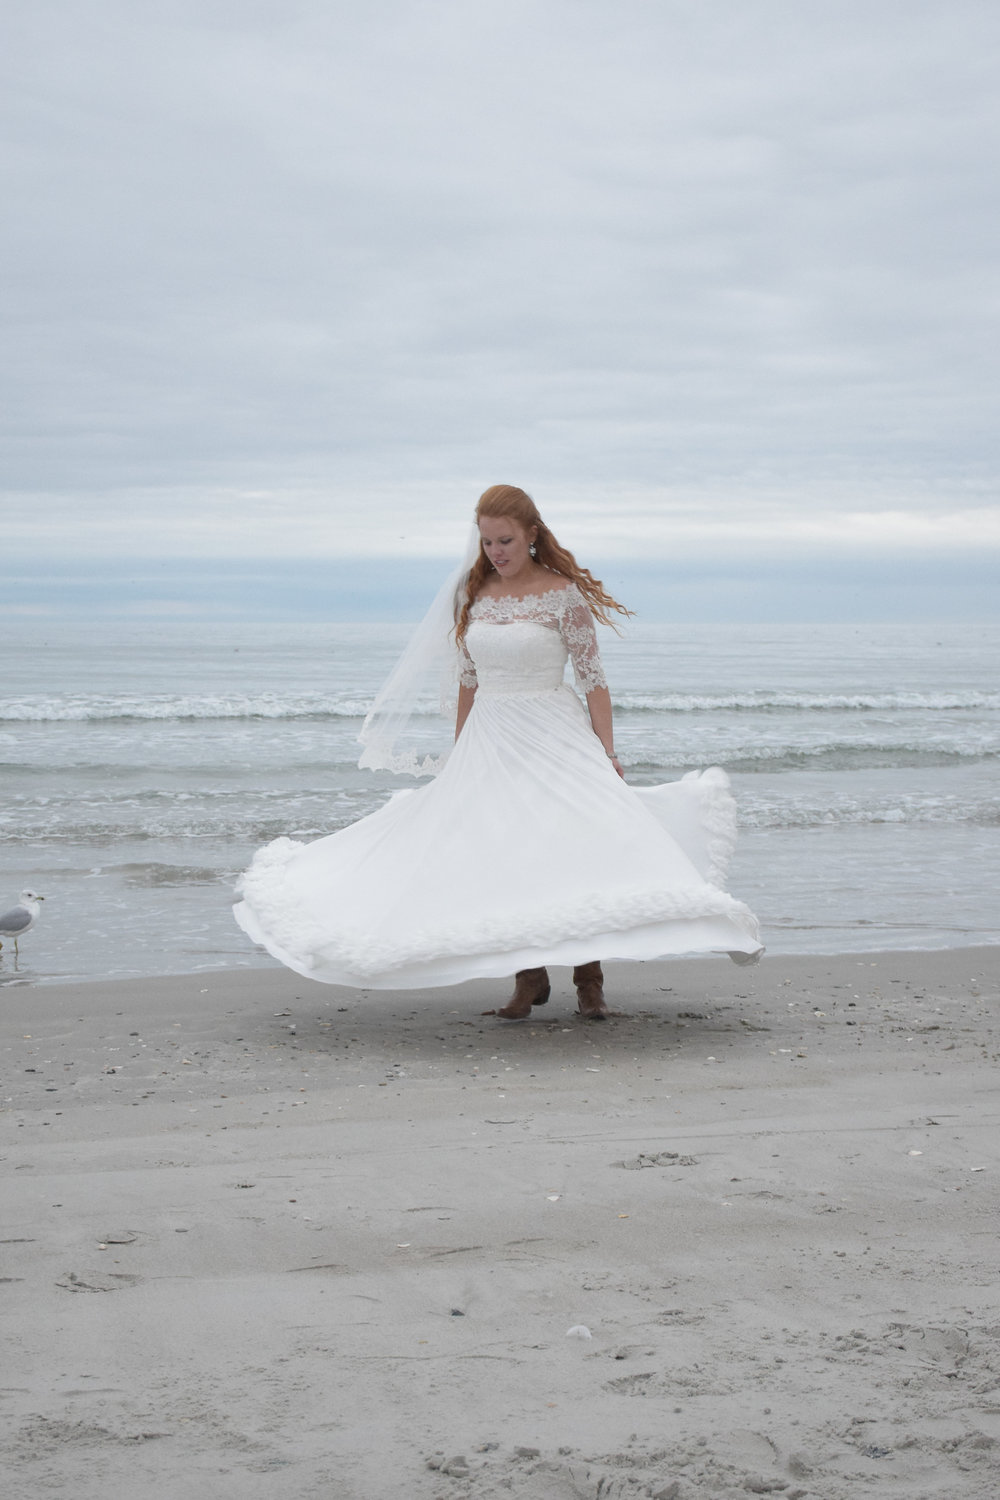 - Bride flaring her dress on a cold January Beach. Wrightsville Beach, NC.